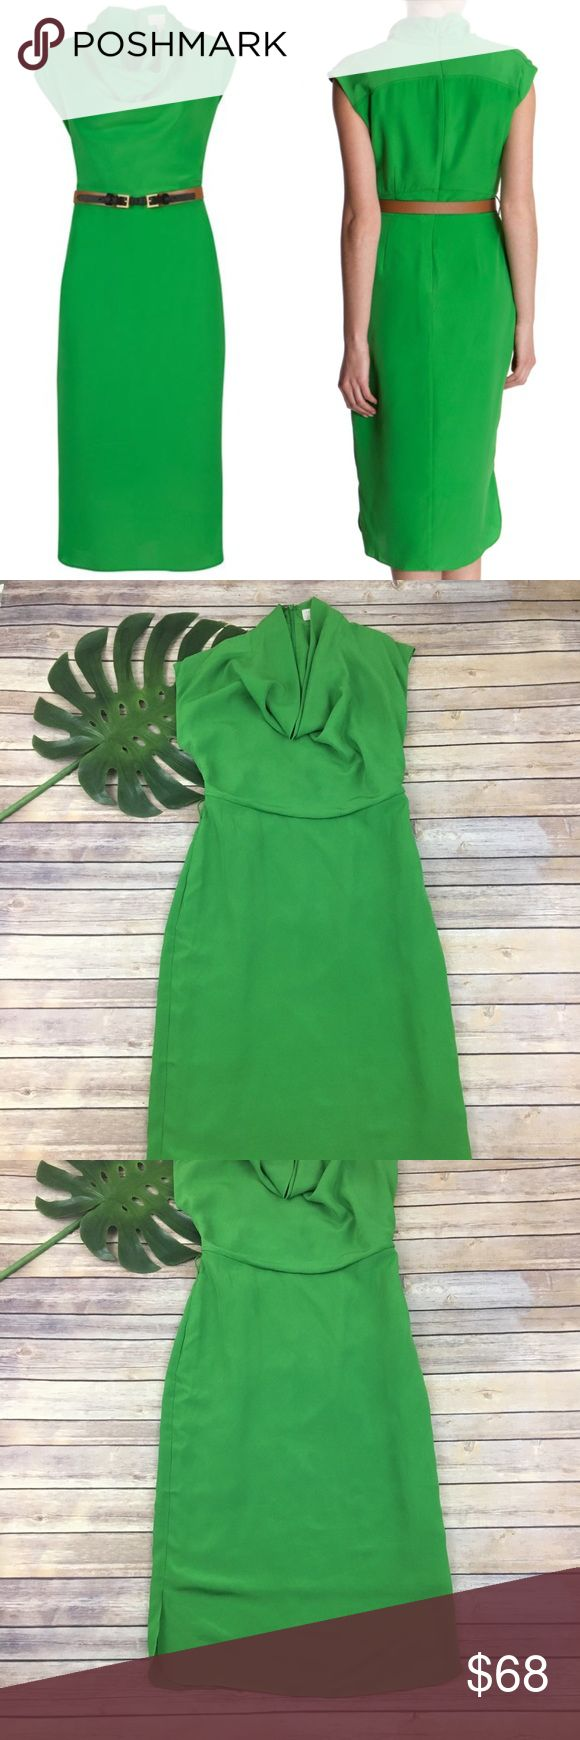 Ted Baker Kelly green dress fitted with pockets Ted Baker bright green midi dress, size 3 (8). It is in good condition but is missing the belt. It measures about 38 inches around the bust, about 32 inches around the waist and is about 47 inches long. Ted Baker Dresses Midi